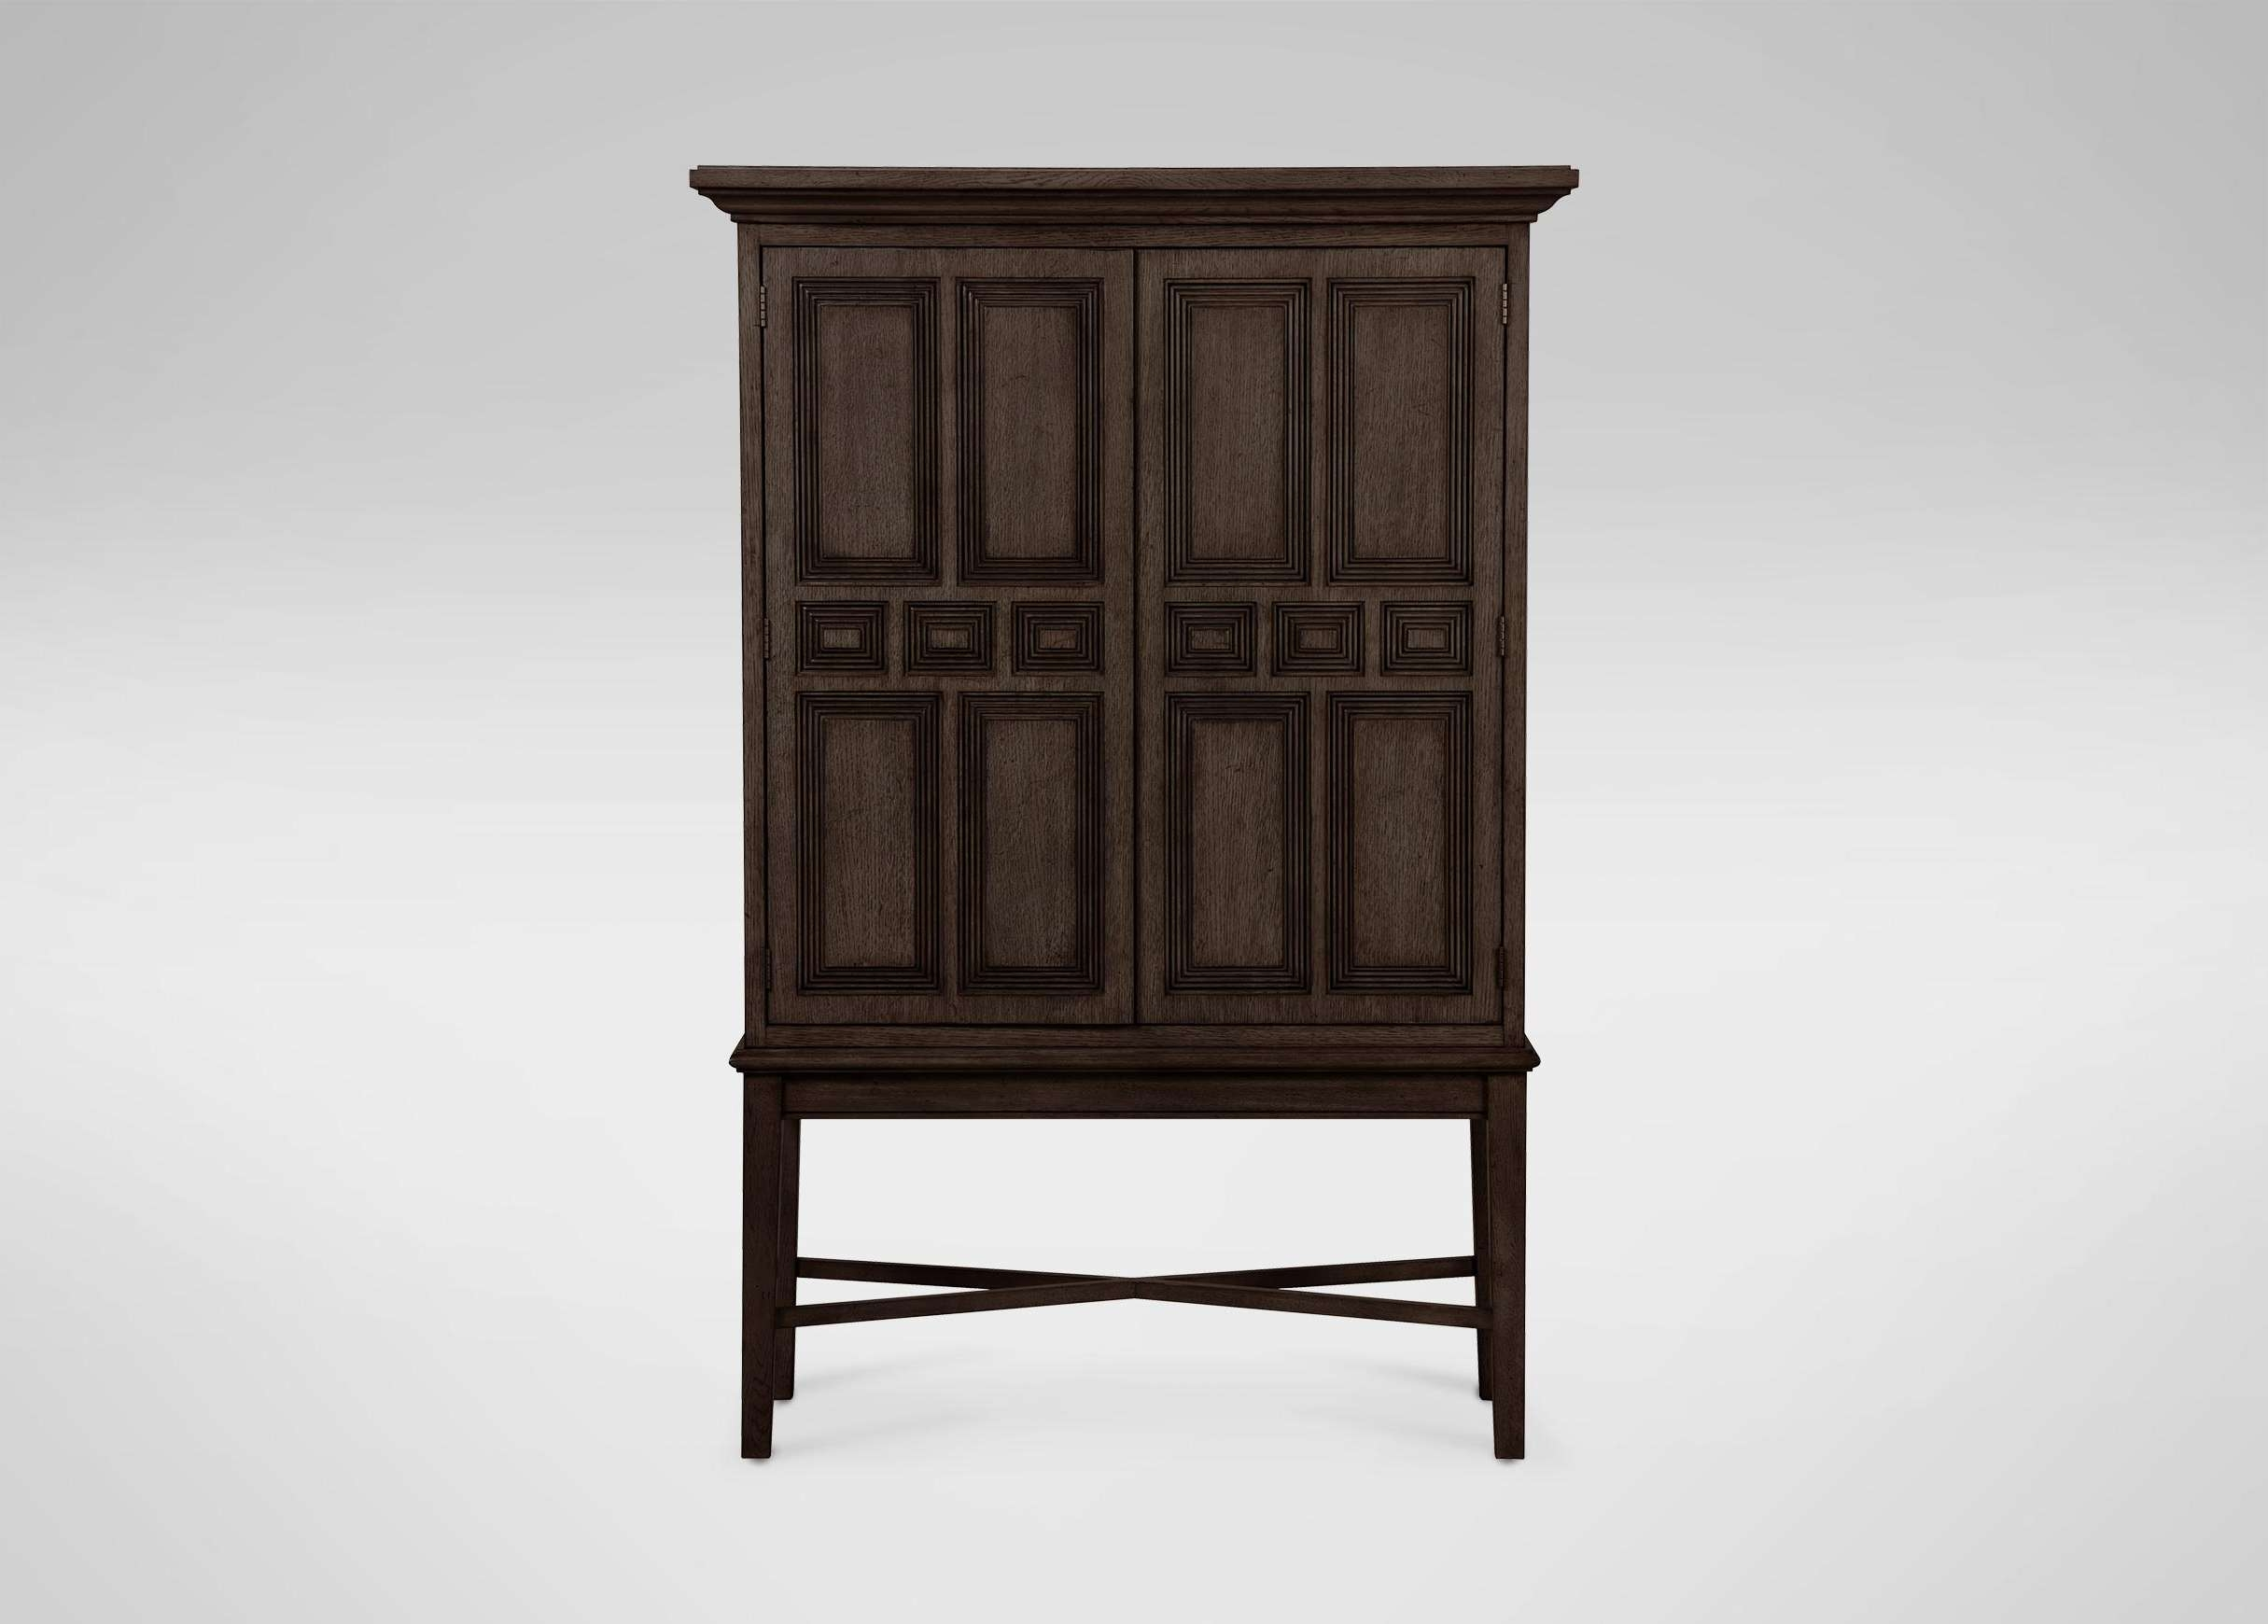 Shop Buffet Storage, Sideboards & Servers | Ethan Allen Pertaining To Ethan Allen Sideboards (View 13 of 20)